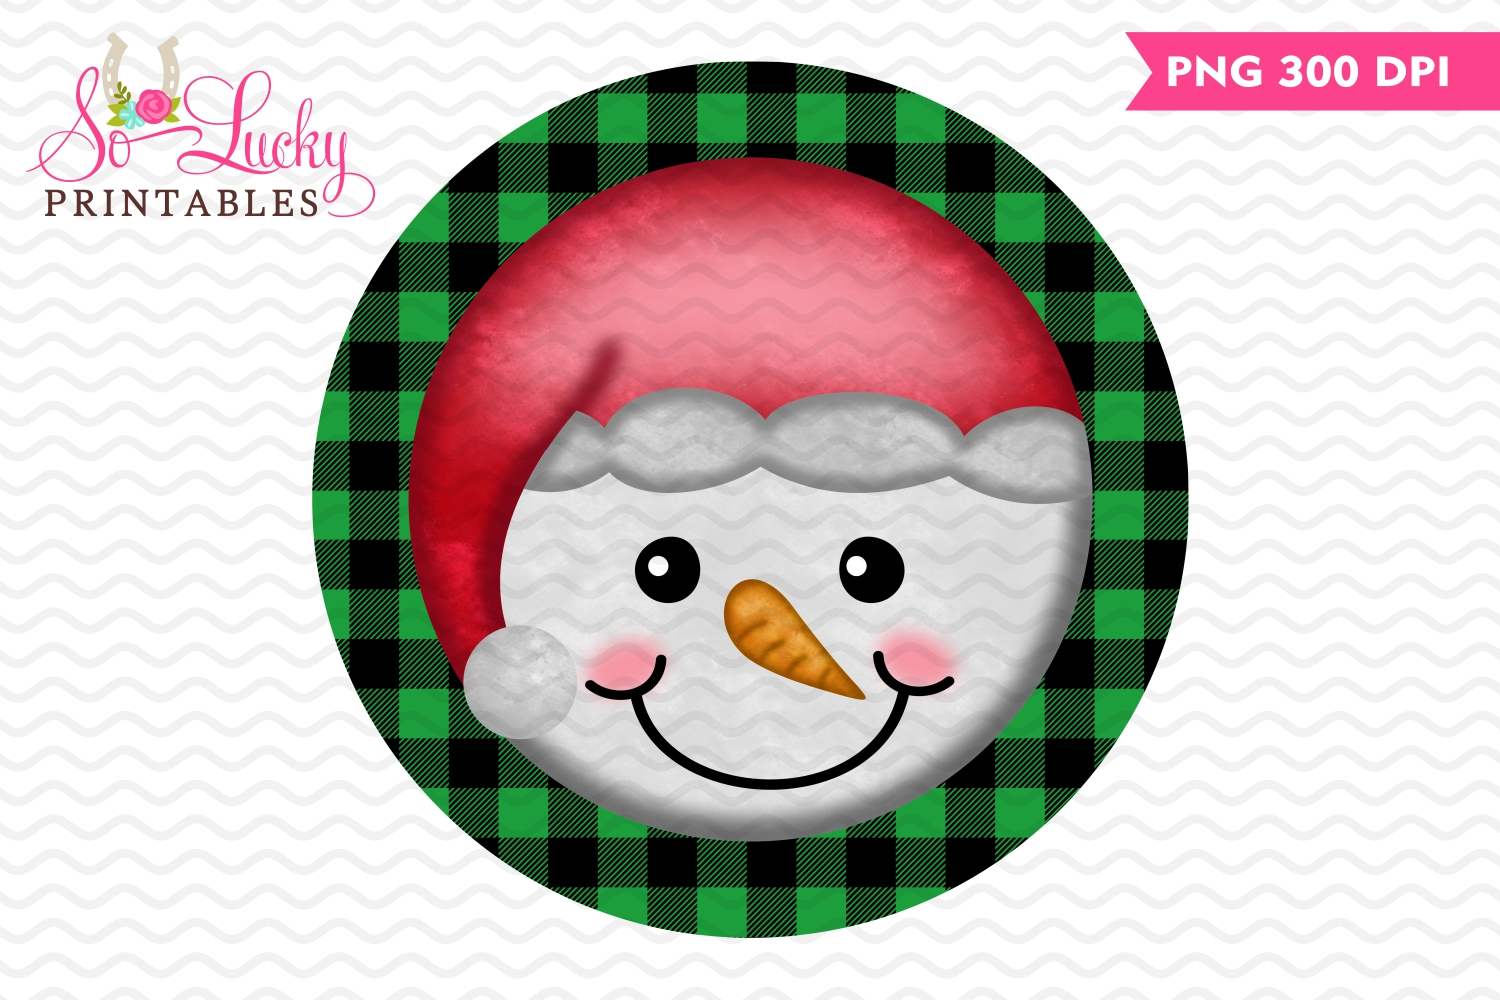 It is a picture of Printable Snowman Face with applique